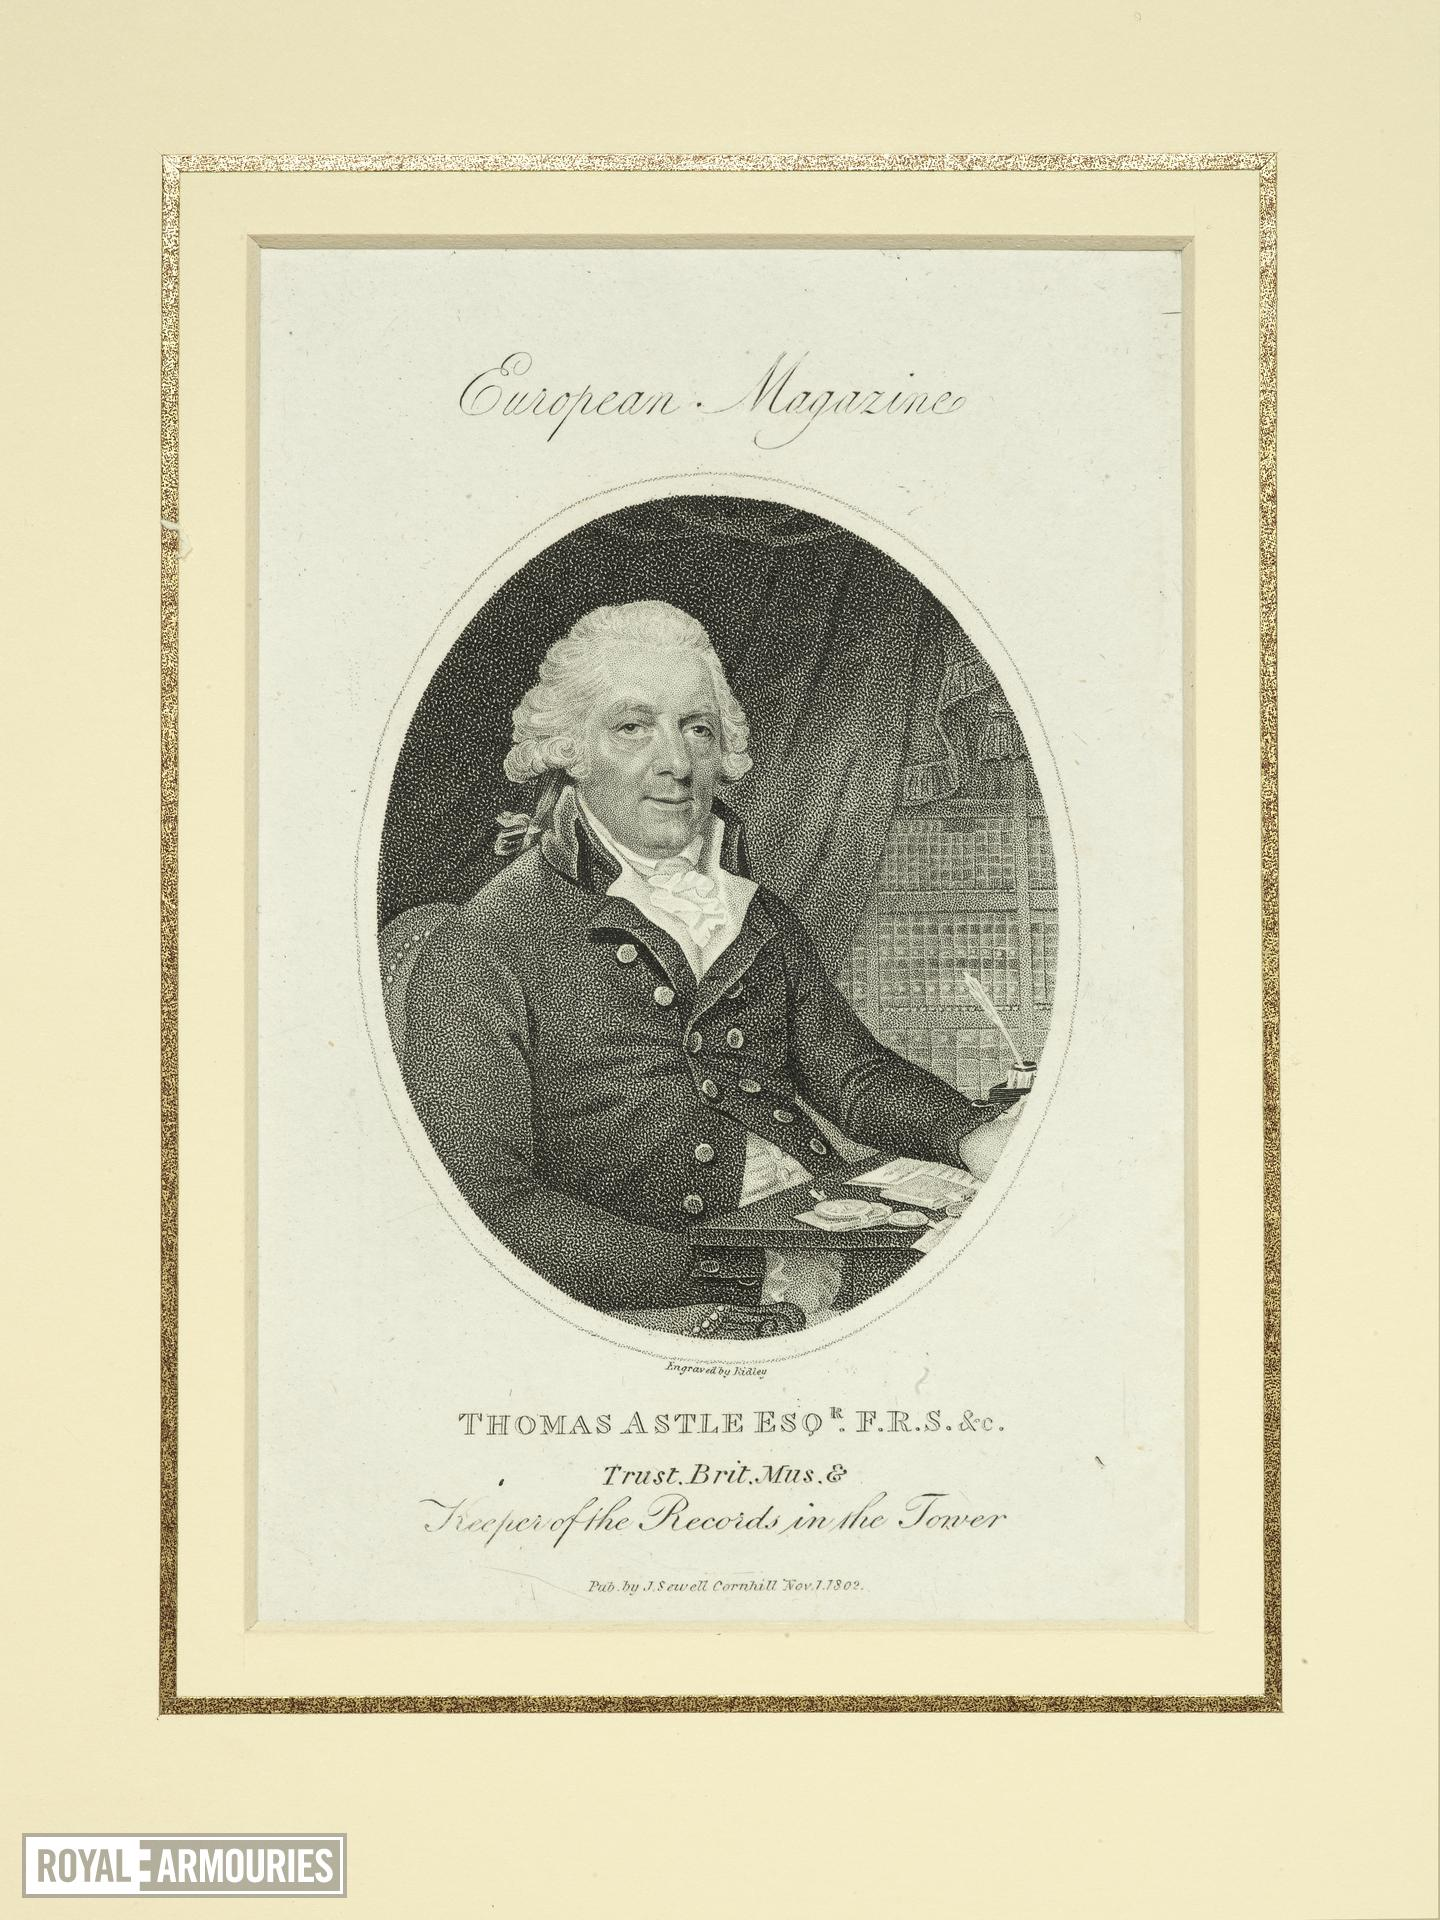 Print engraved portrait of Thomas Astle, keeper of the Record Office in the Tower, 1802.